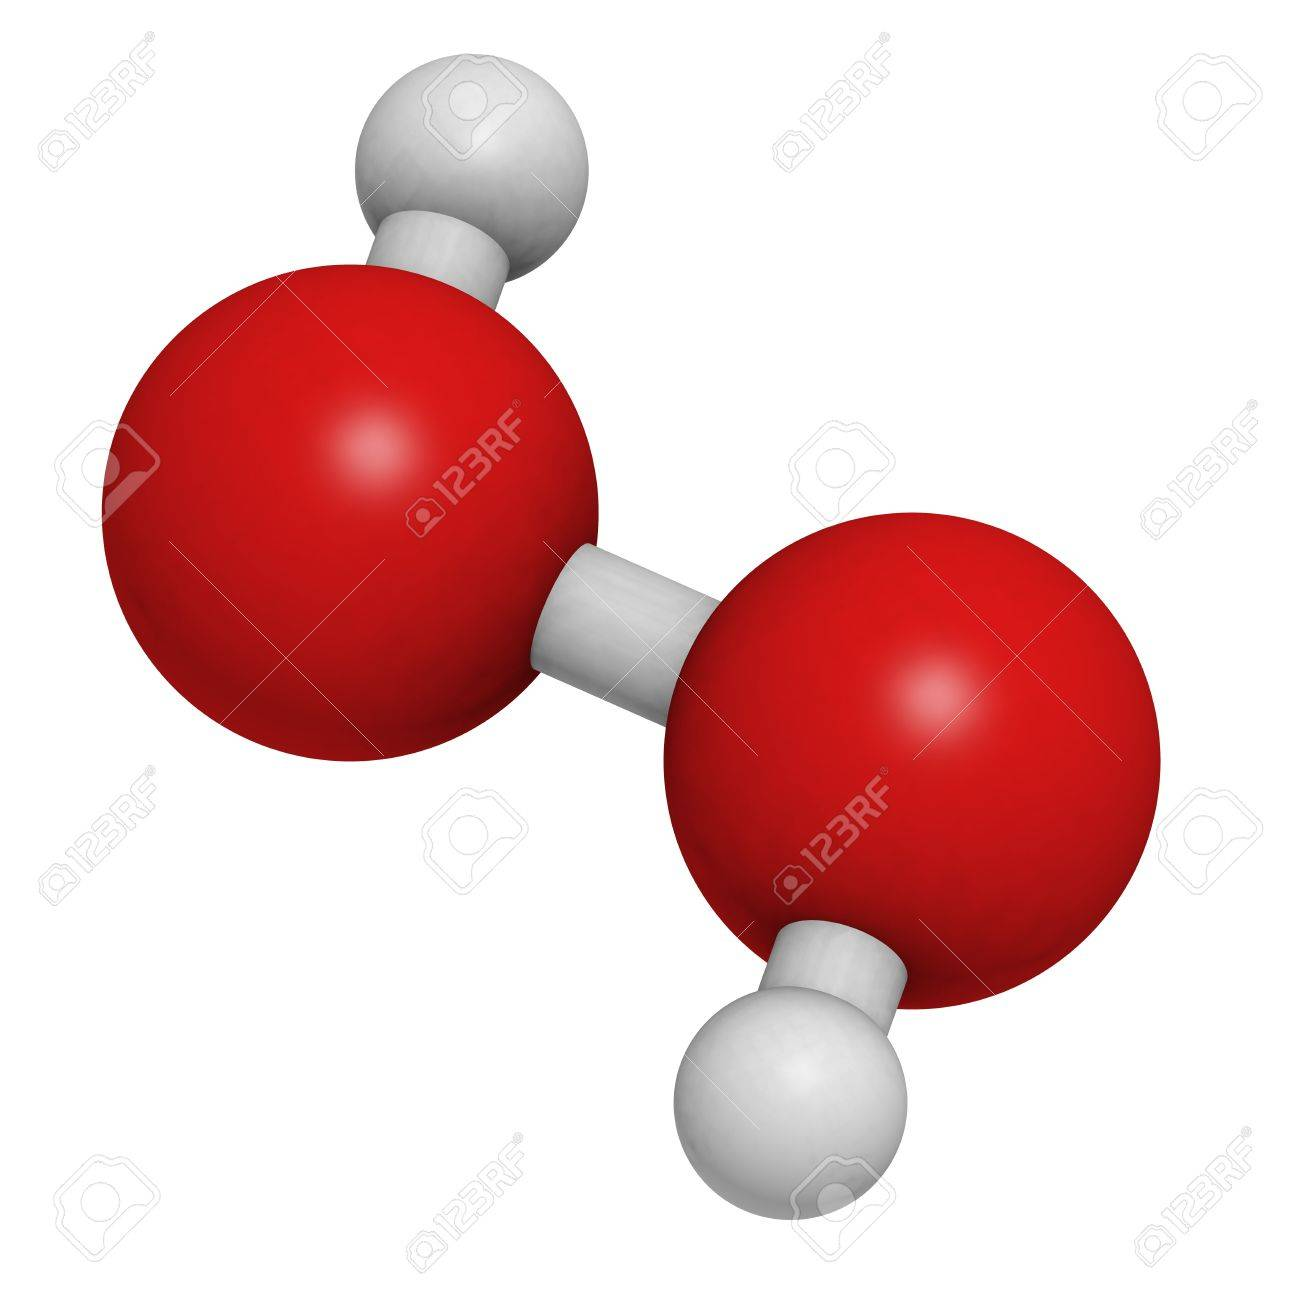 Hydrogen peroxide (H2O2) molecule, chemical structure. HOOH is an example of a reactive oxygen species (ROS). H2O2 solutions are often used in bleach and cleaning agents. Atoms are represented as spheres with conventional color coding: hydrogen (white), o Stock Photo - 18212797